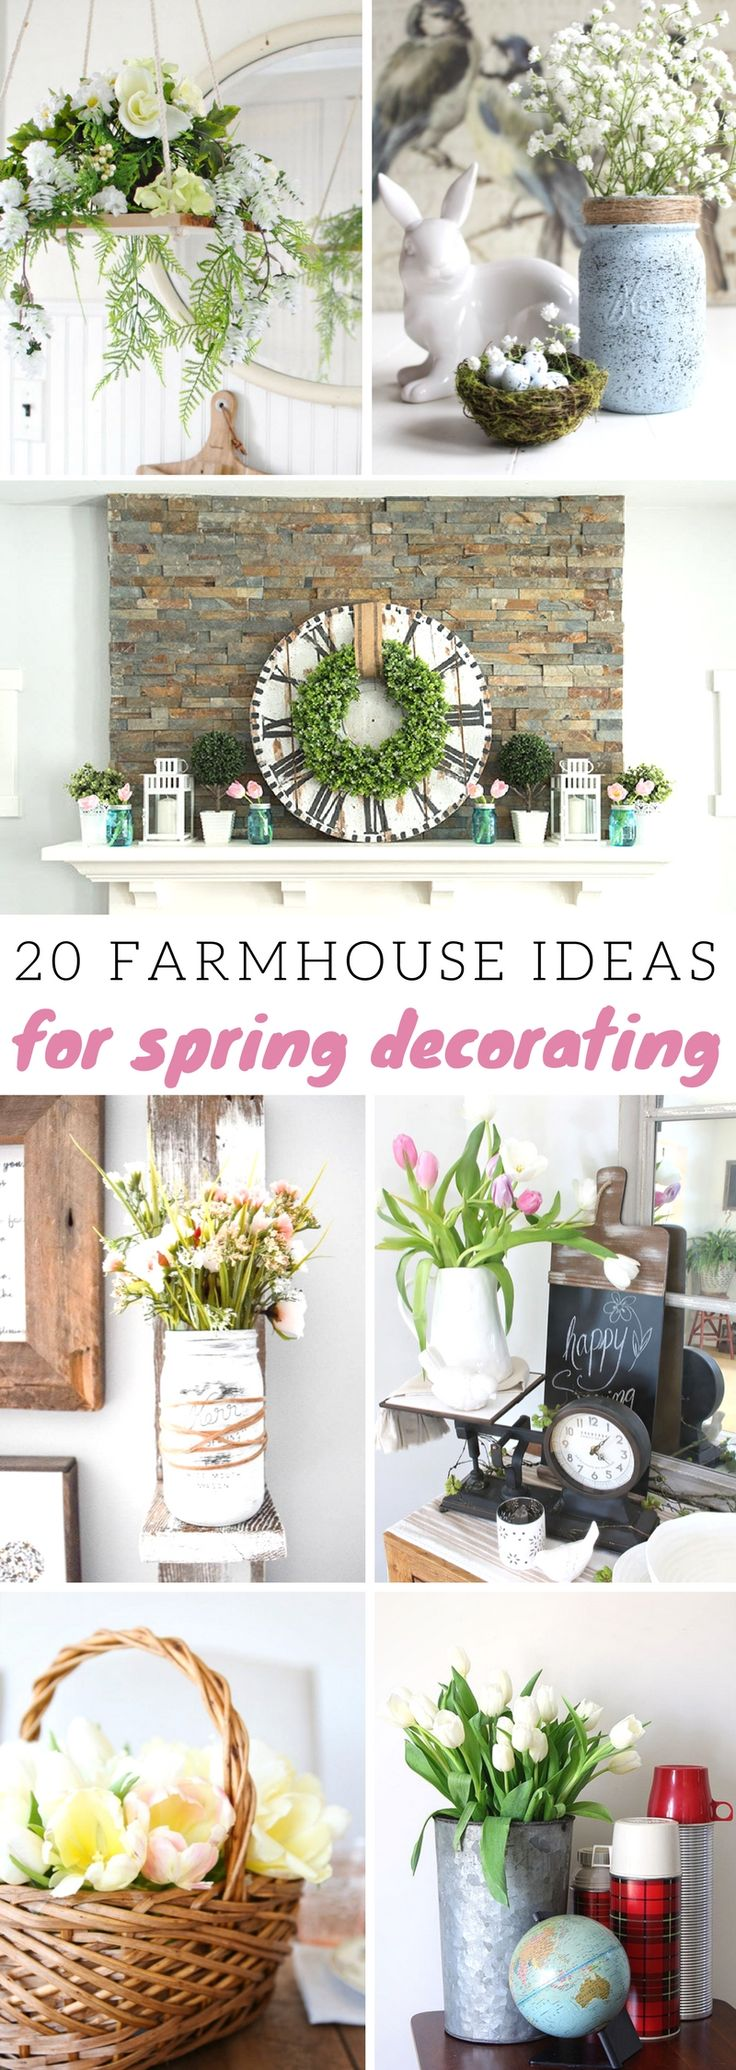 Farmhouse Ideas for Spring Decorating fixerupper farmhouse